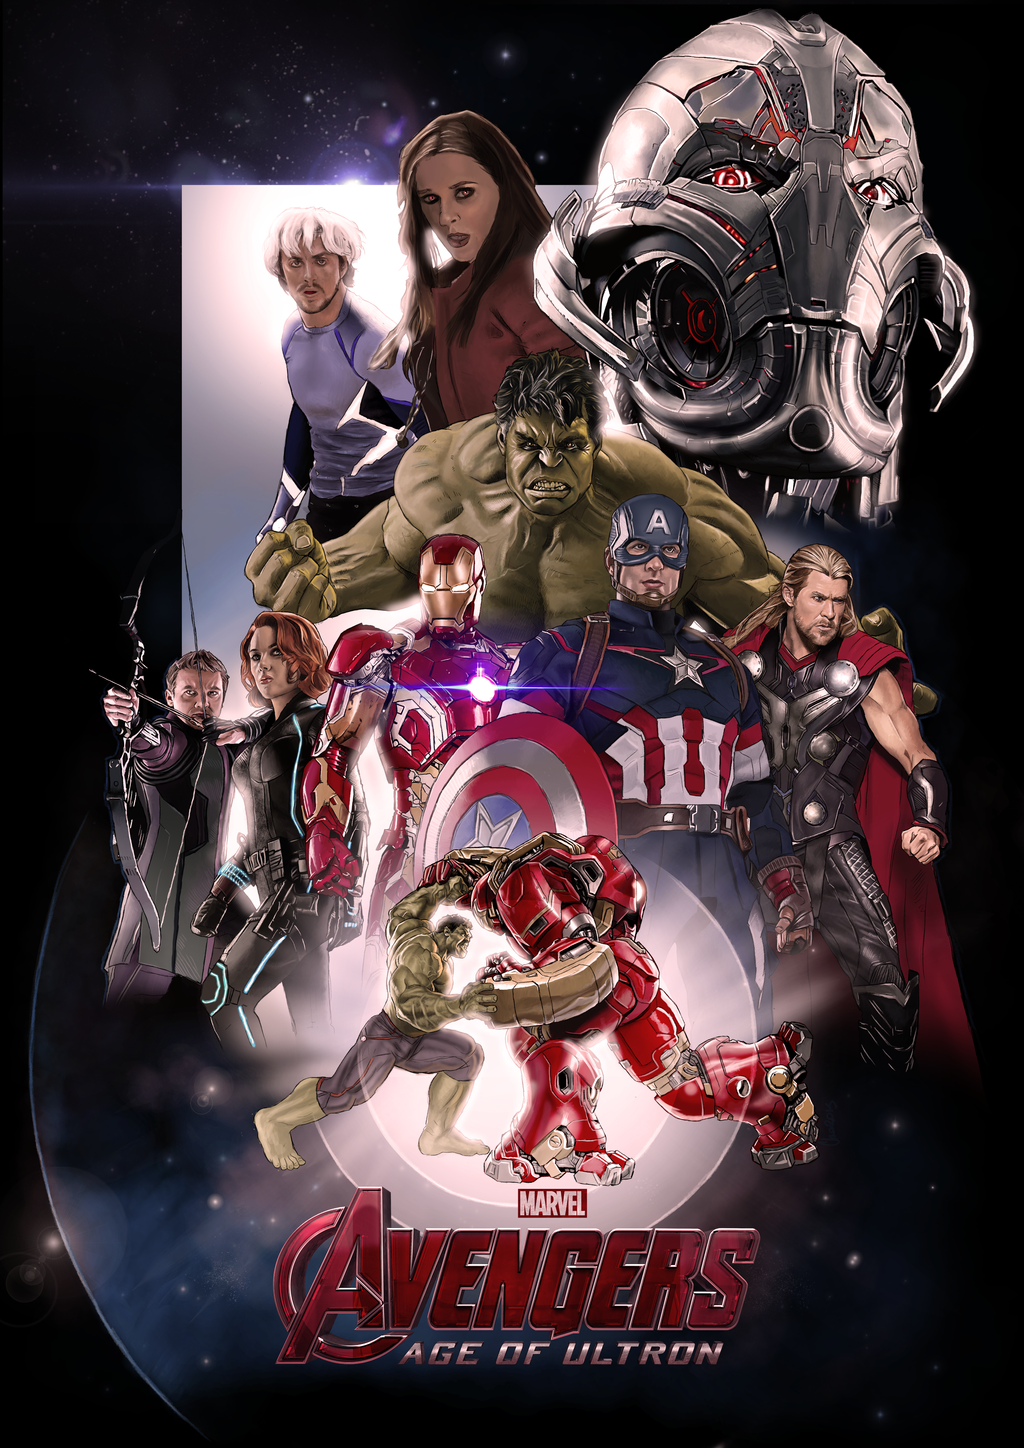 Avengers Age Of Ultron By Iloegbunam On Deviantart: Avengers: Age Of Ultron By ChristopherOwenArt On DeviantArt